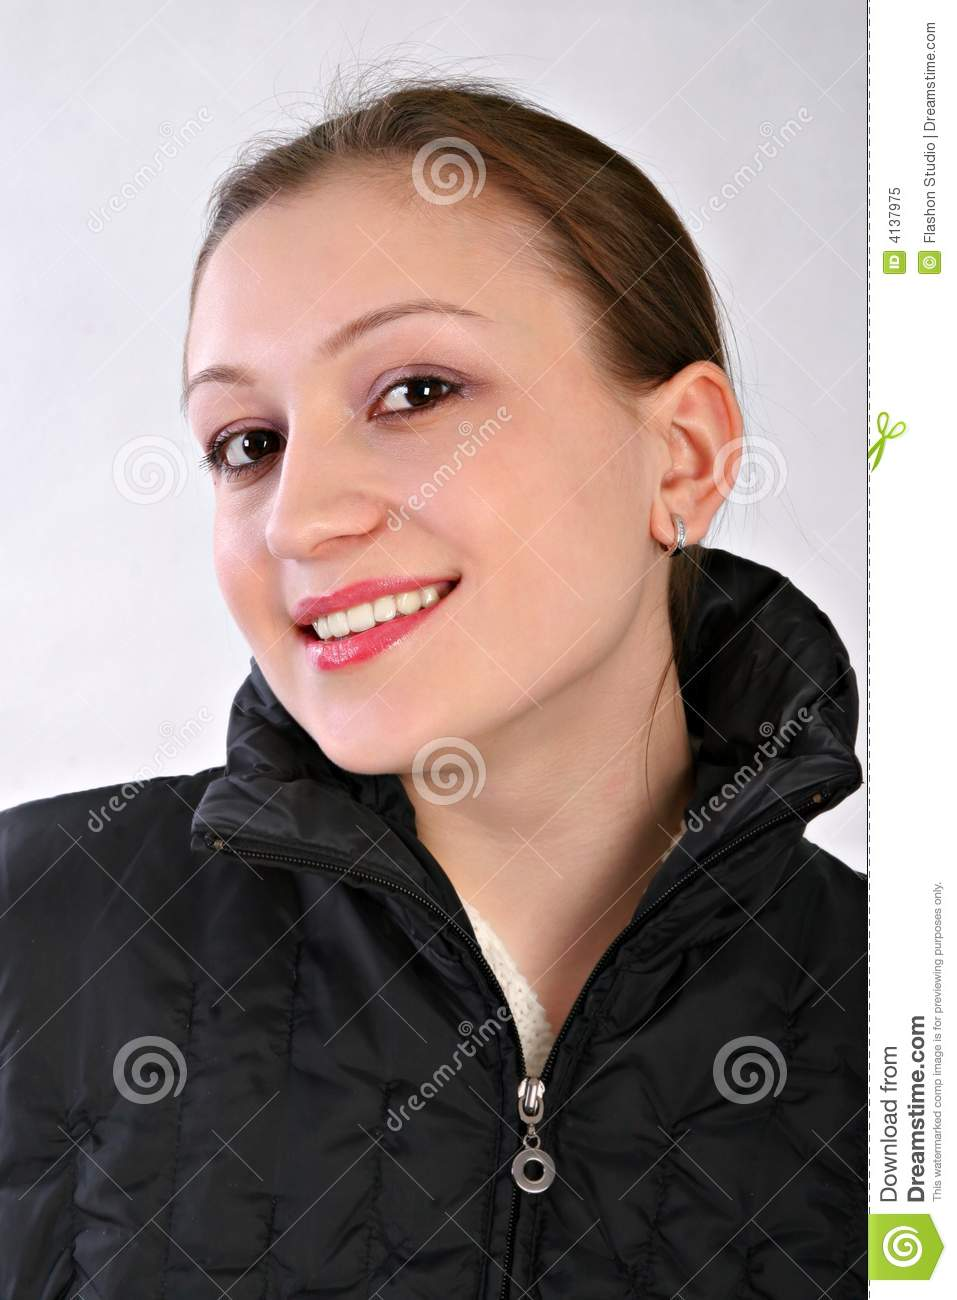 Healthy Natual Looking 19 Year Old Girl Portrait Stock